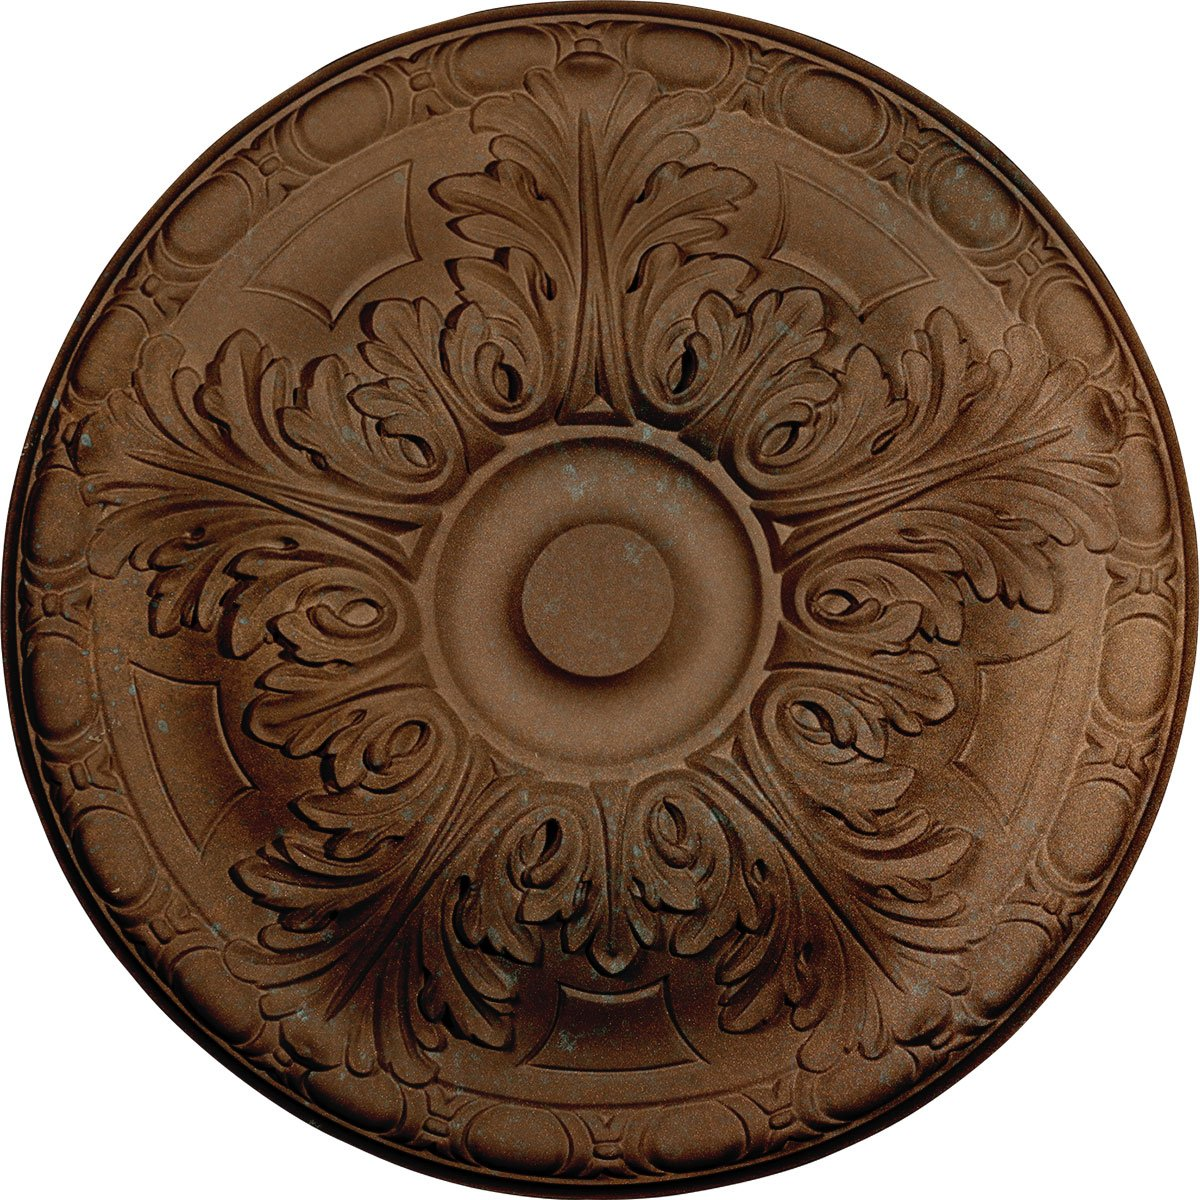 Ekena Millwork CM16GACGS 15 3/4'' OD X 5/8'' P Granada Ceiling Medallion fits Canopies up to 4 1/4'', Copper Green Patina